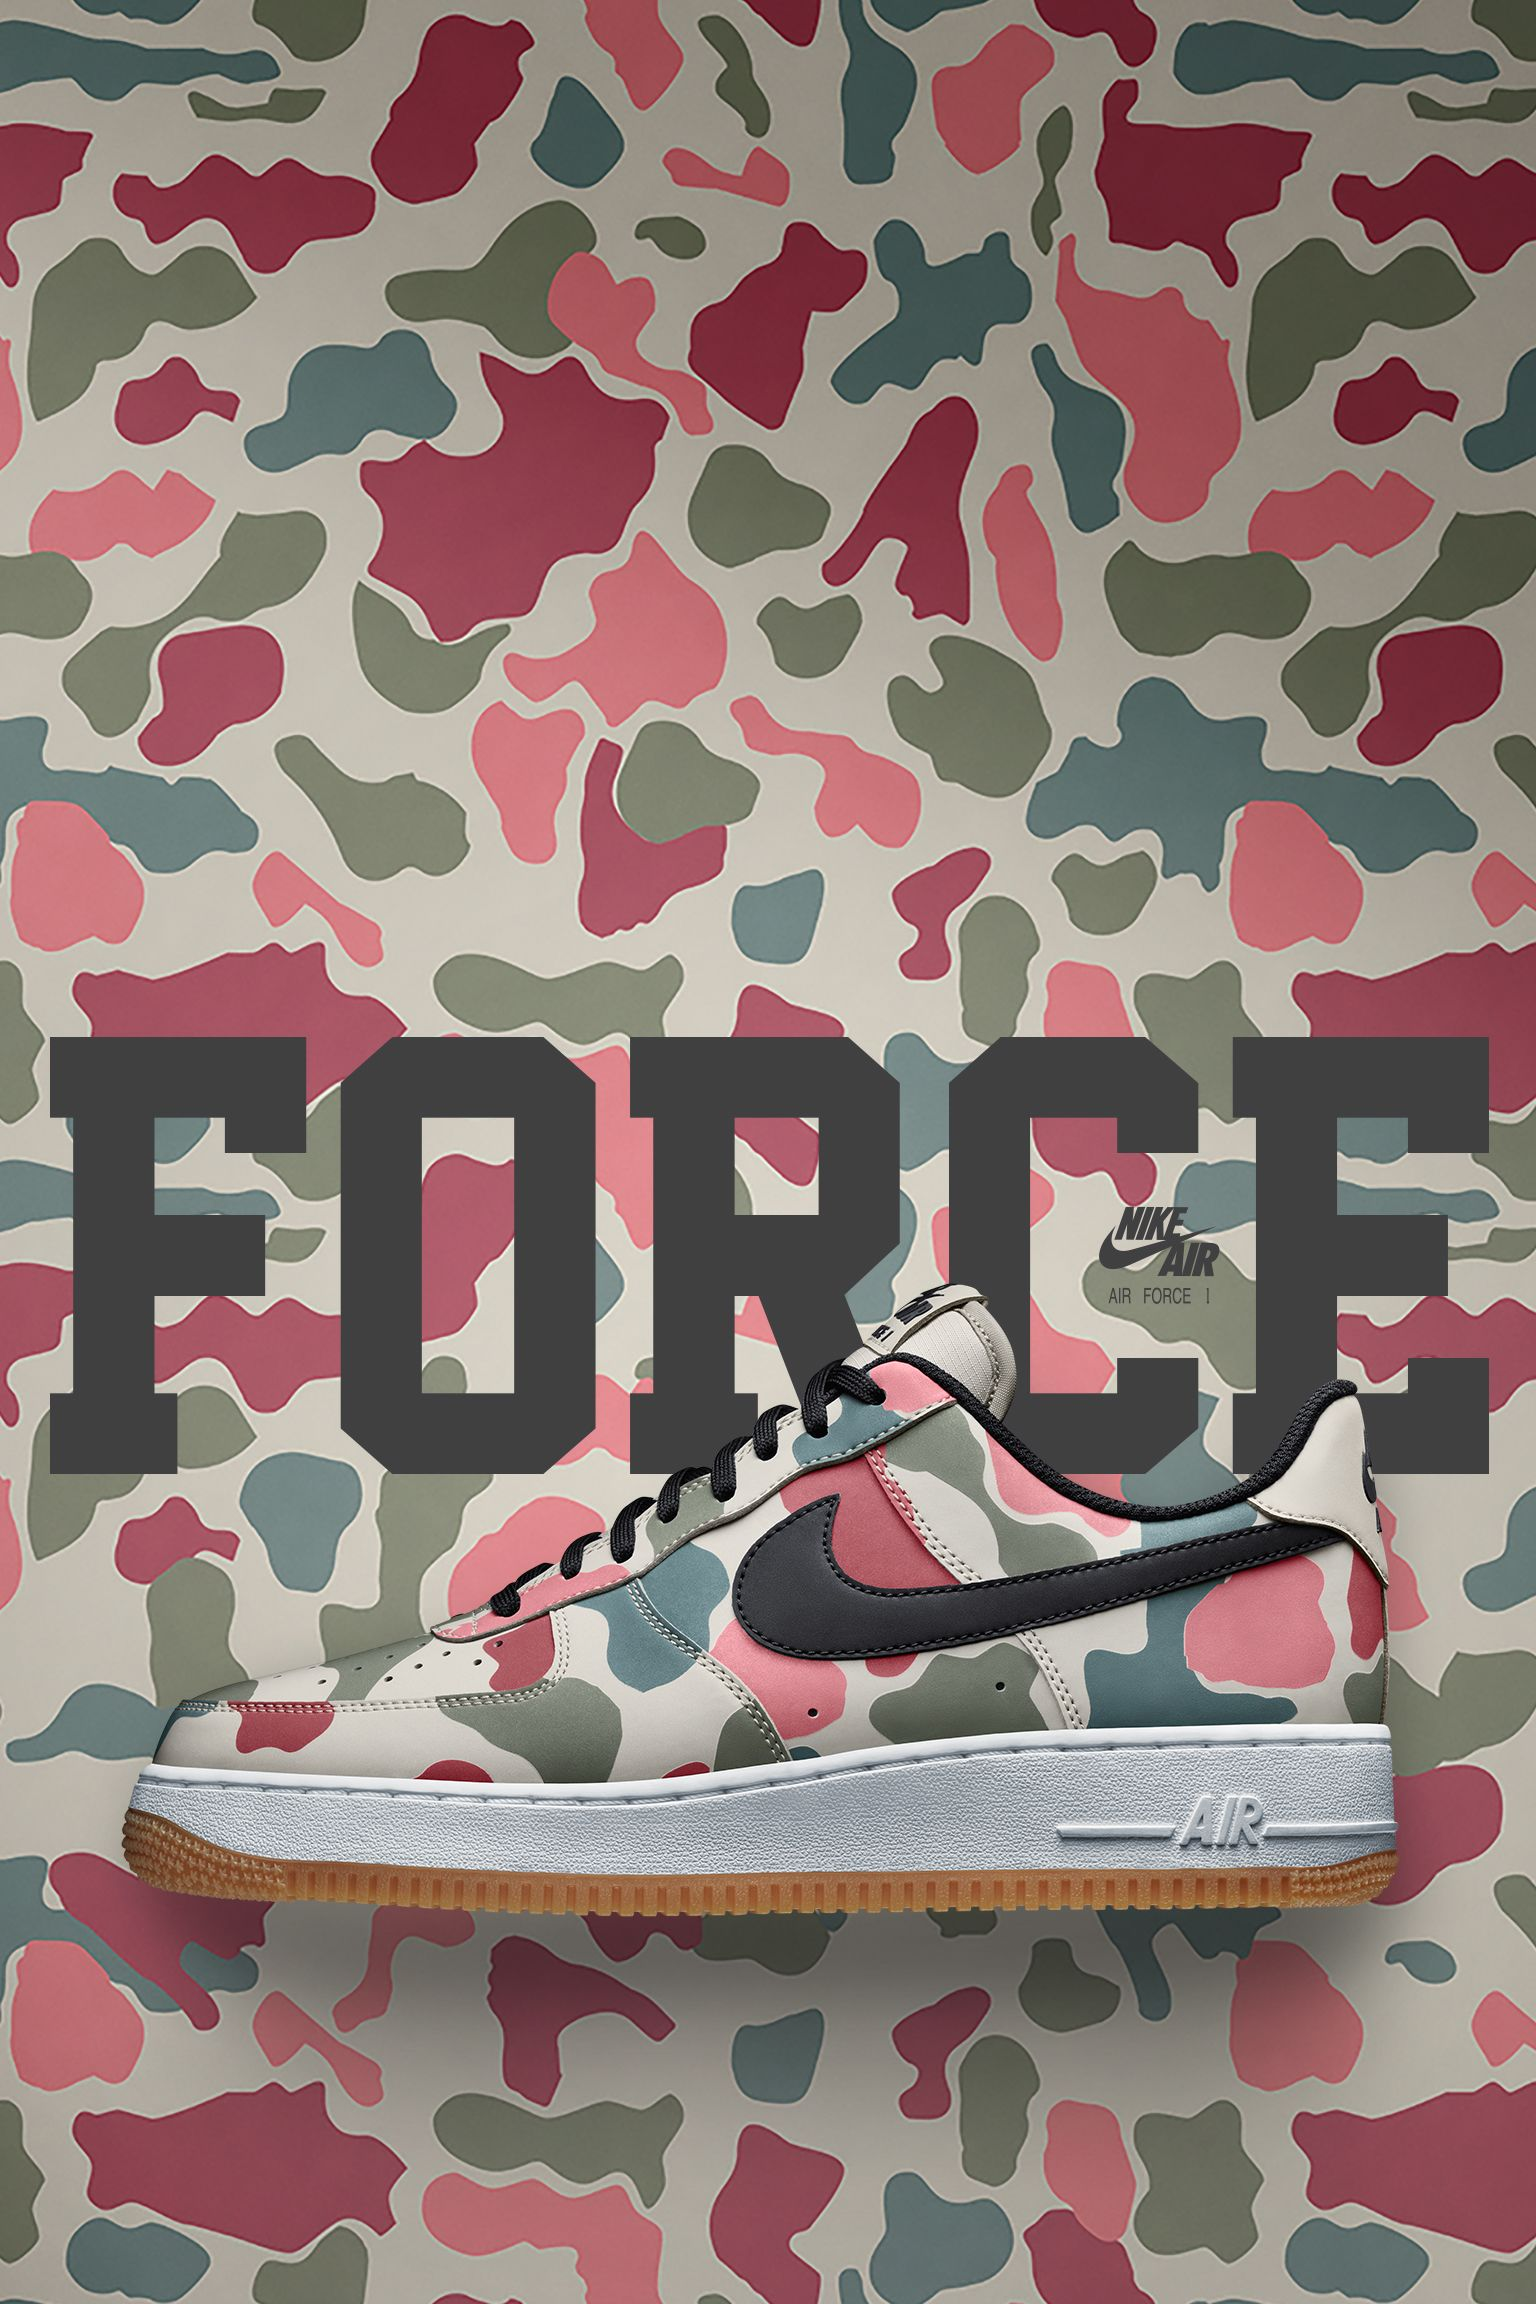 Nike Air Force 1 Low 07 'Duck Camo' Release Date